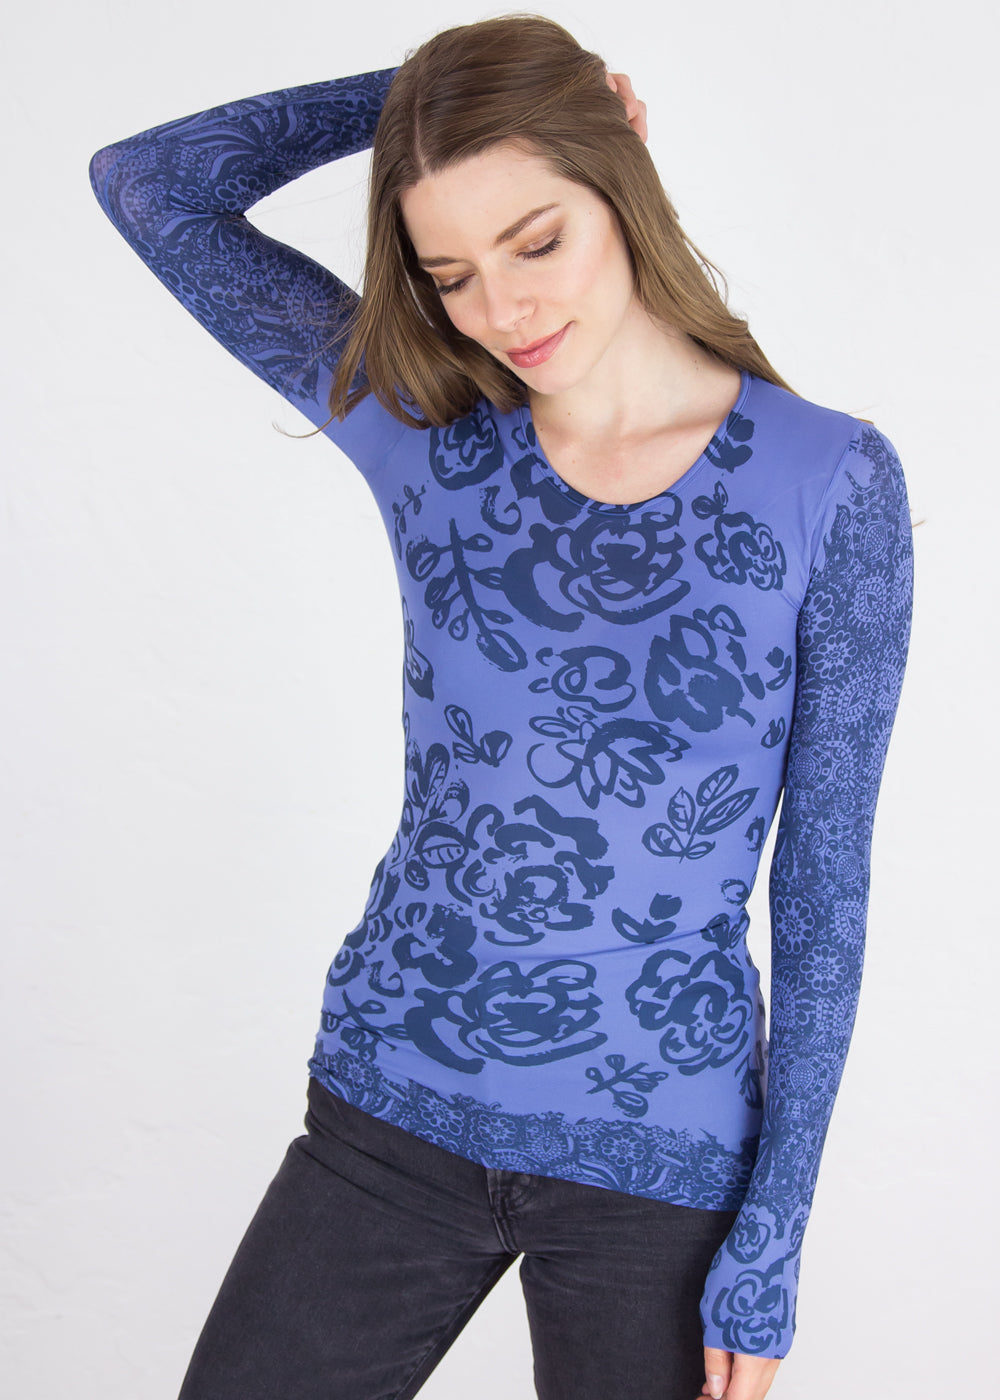 Flower Medley Crew Neck Top - New Colors!